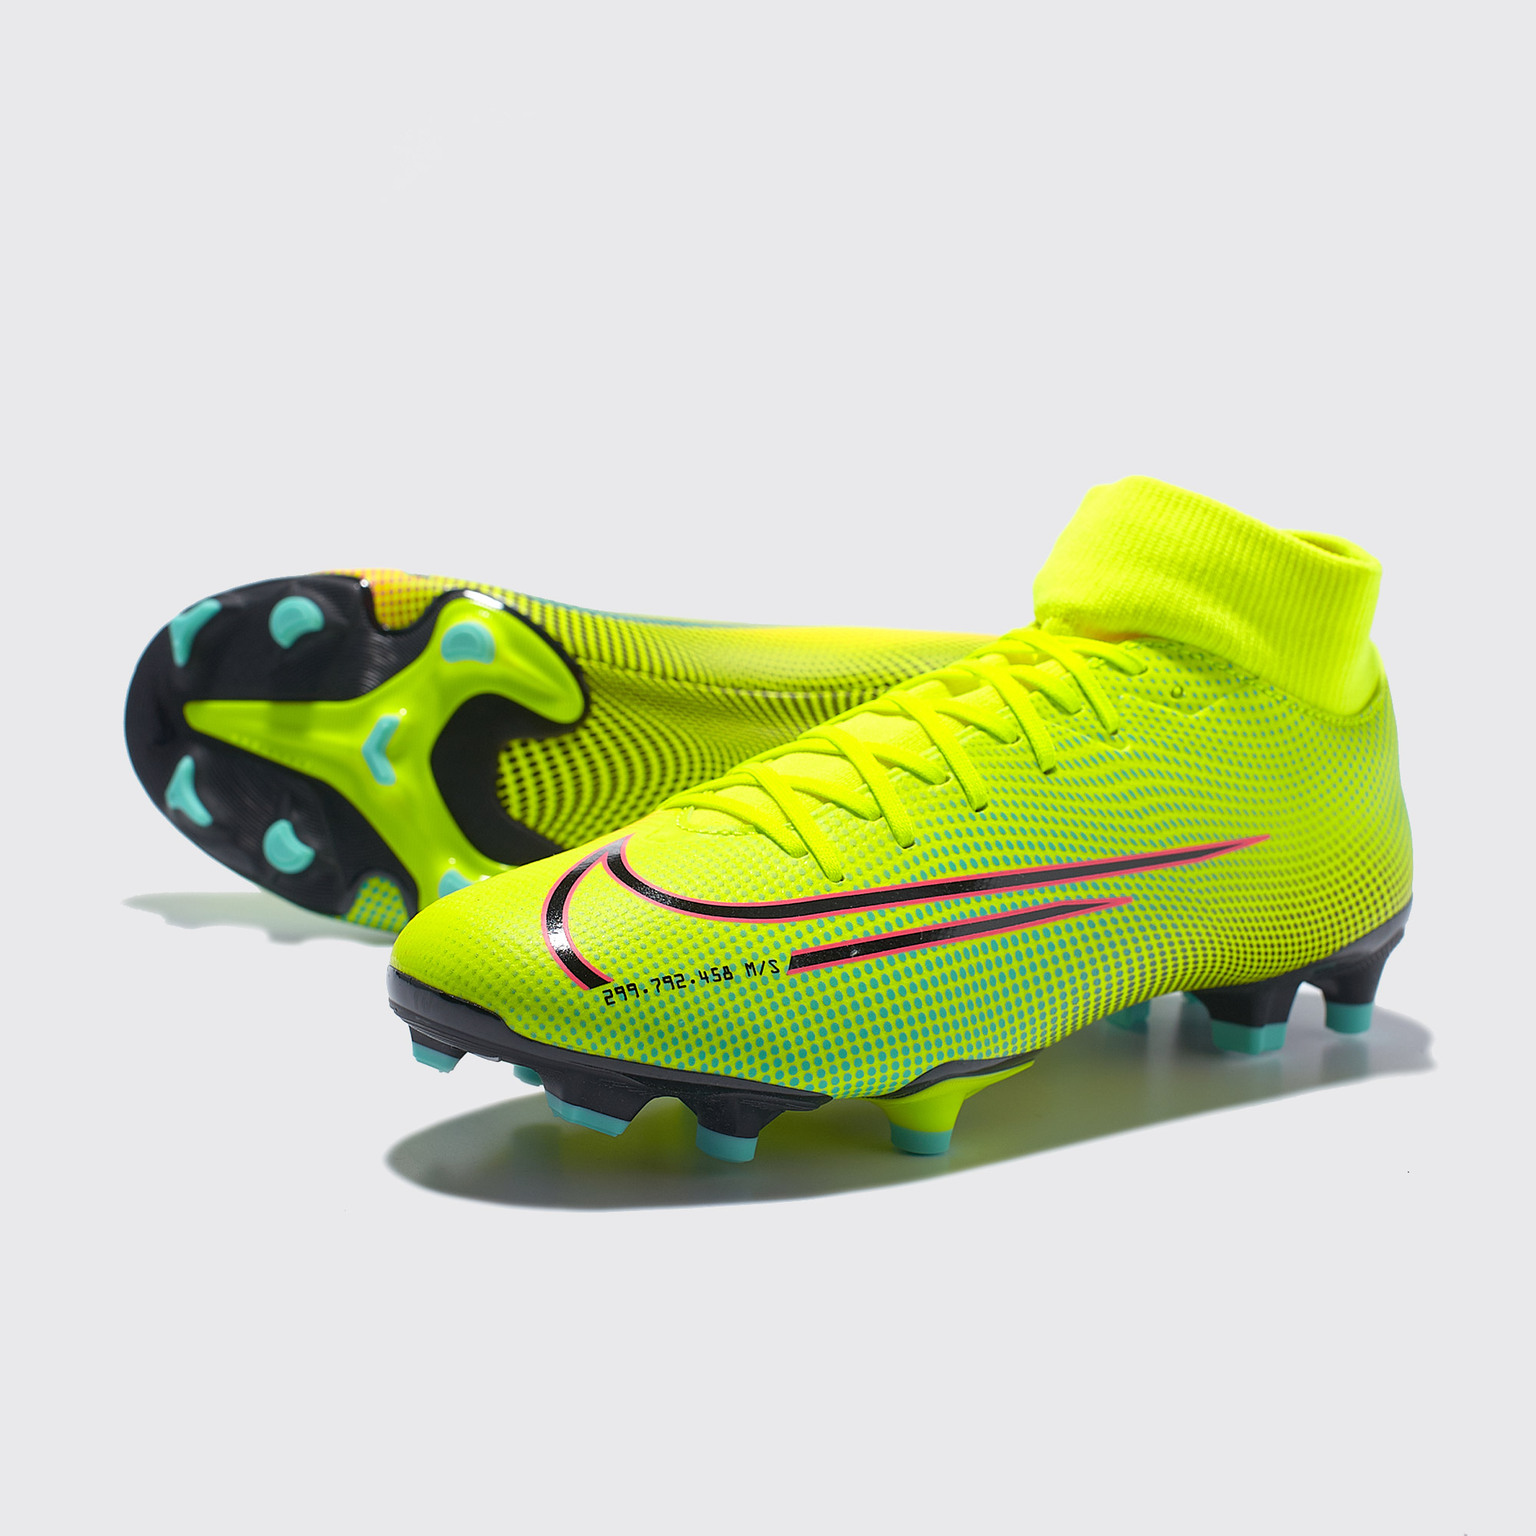 NIKE SUPERFLY 7 ACADEMY MDS FG/MG BQ5427-703